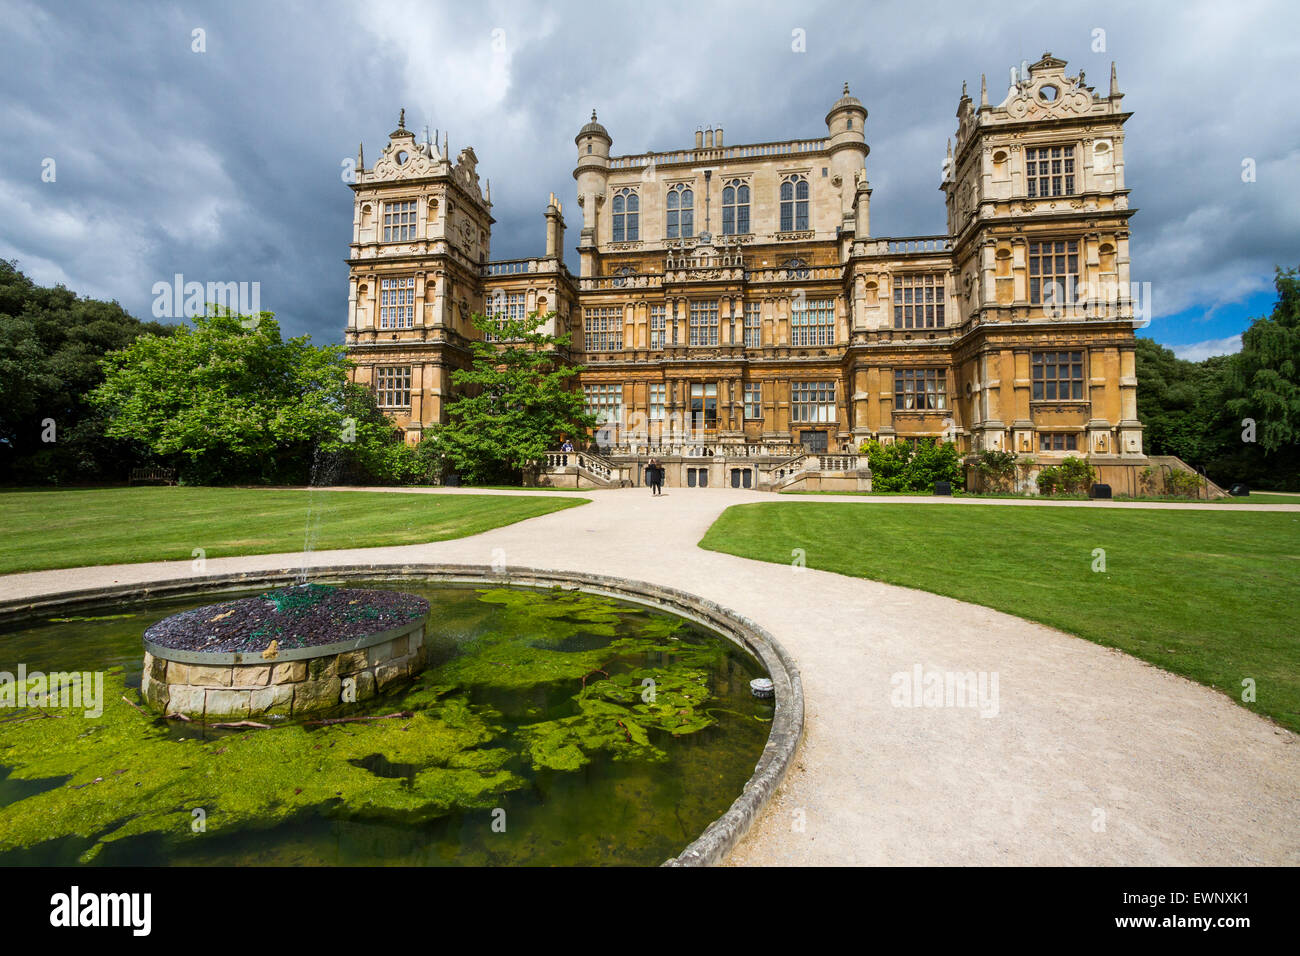 Wollaton Hall in Nottingham, England - Stock Image